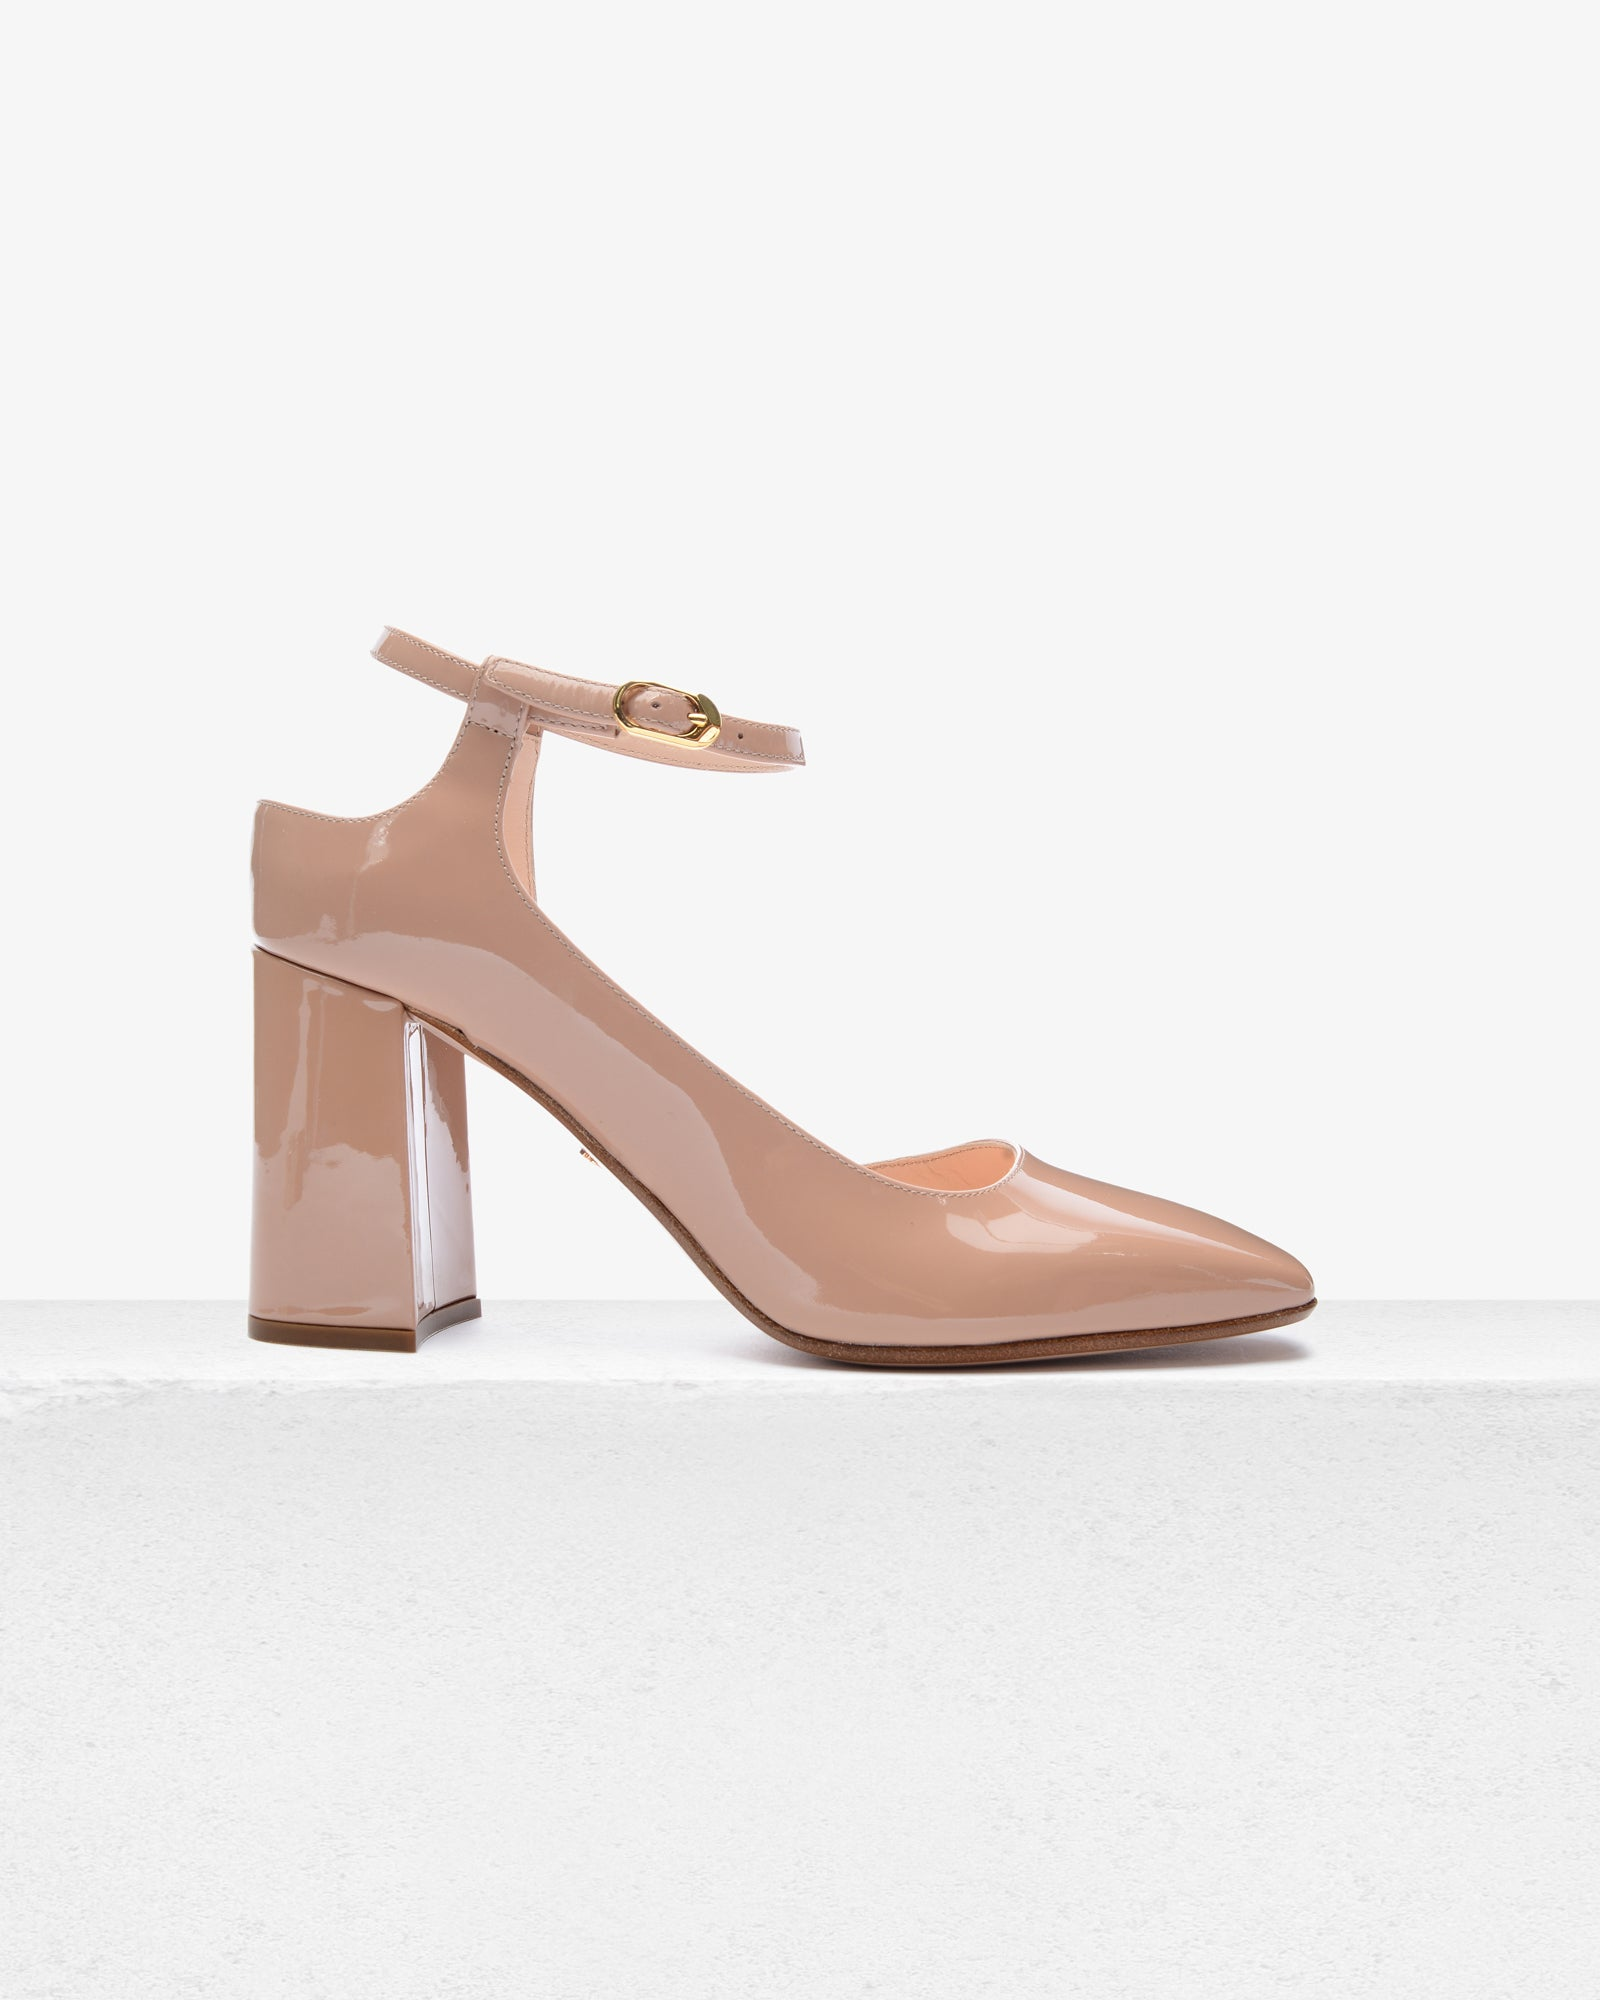 Gioia Nude Patent Leather